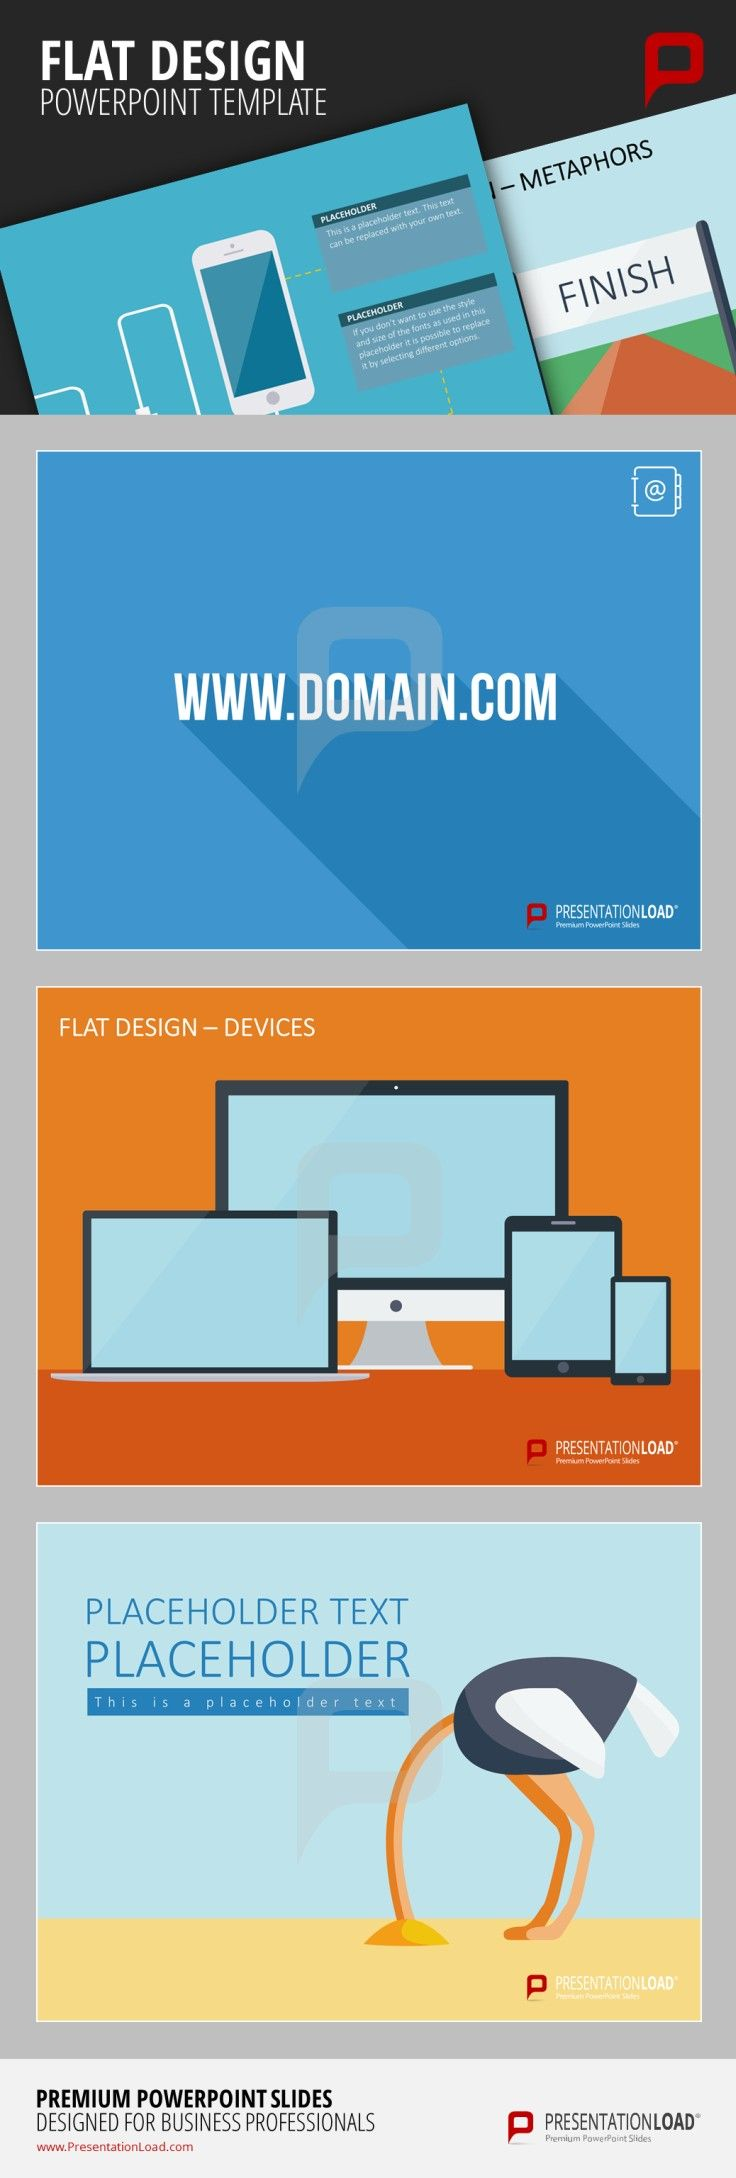 the brandnew flat design powerpoint templates correspond to the, Presentation templates